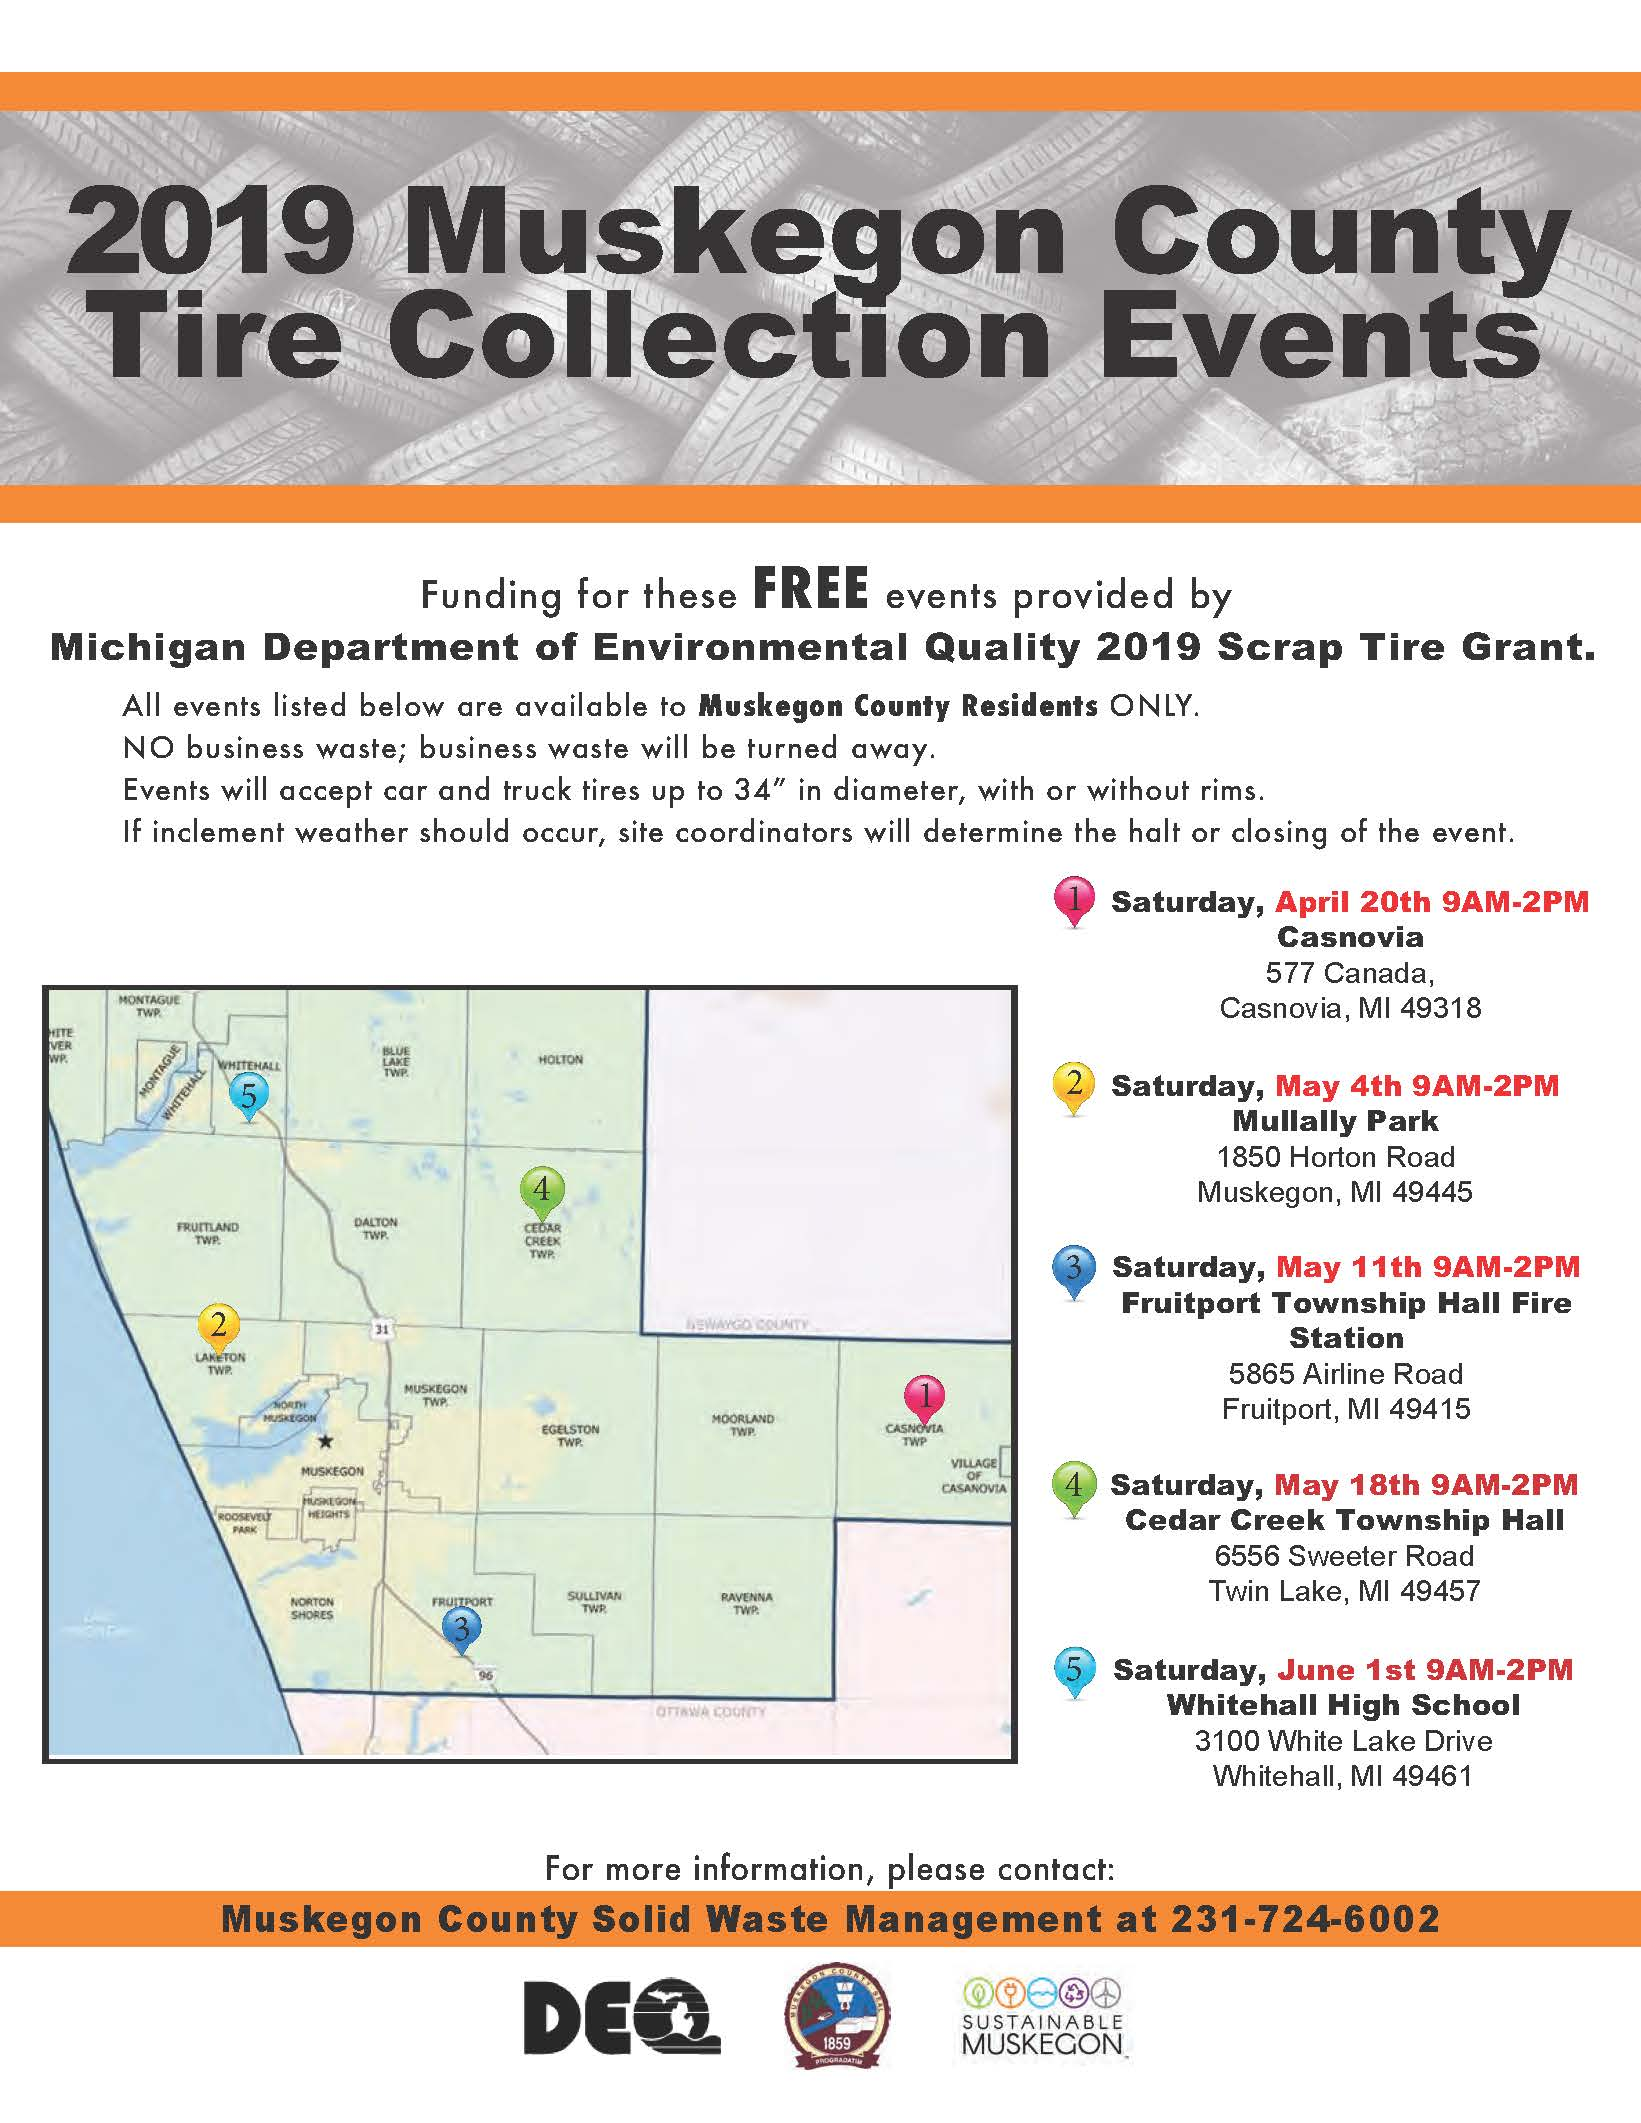 2019 tire event flyer - map numbered